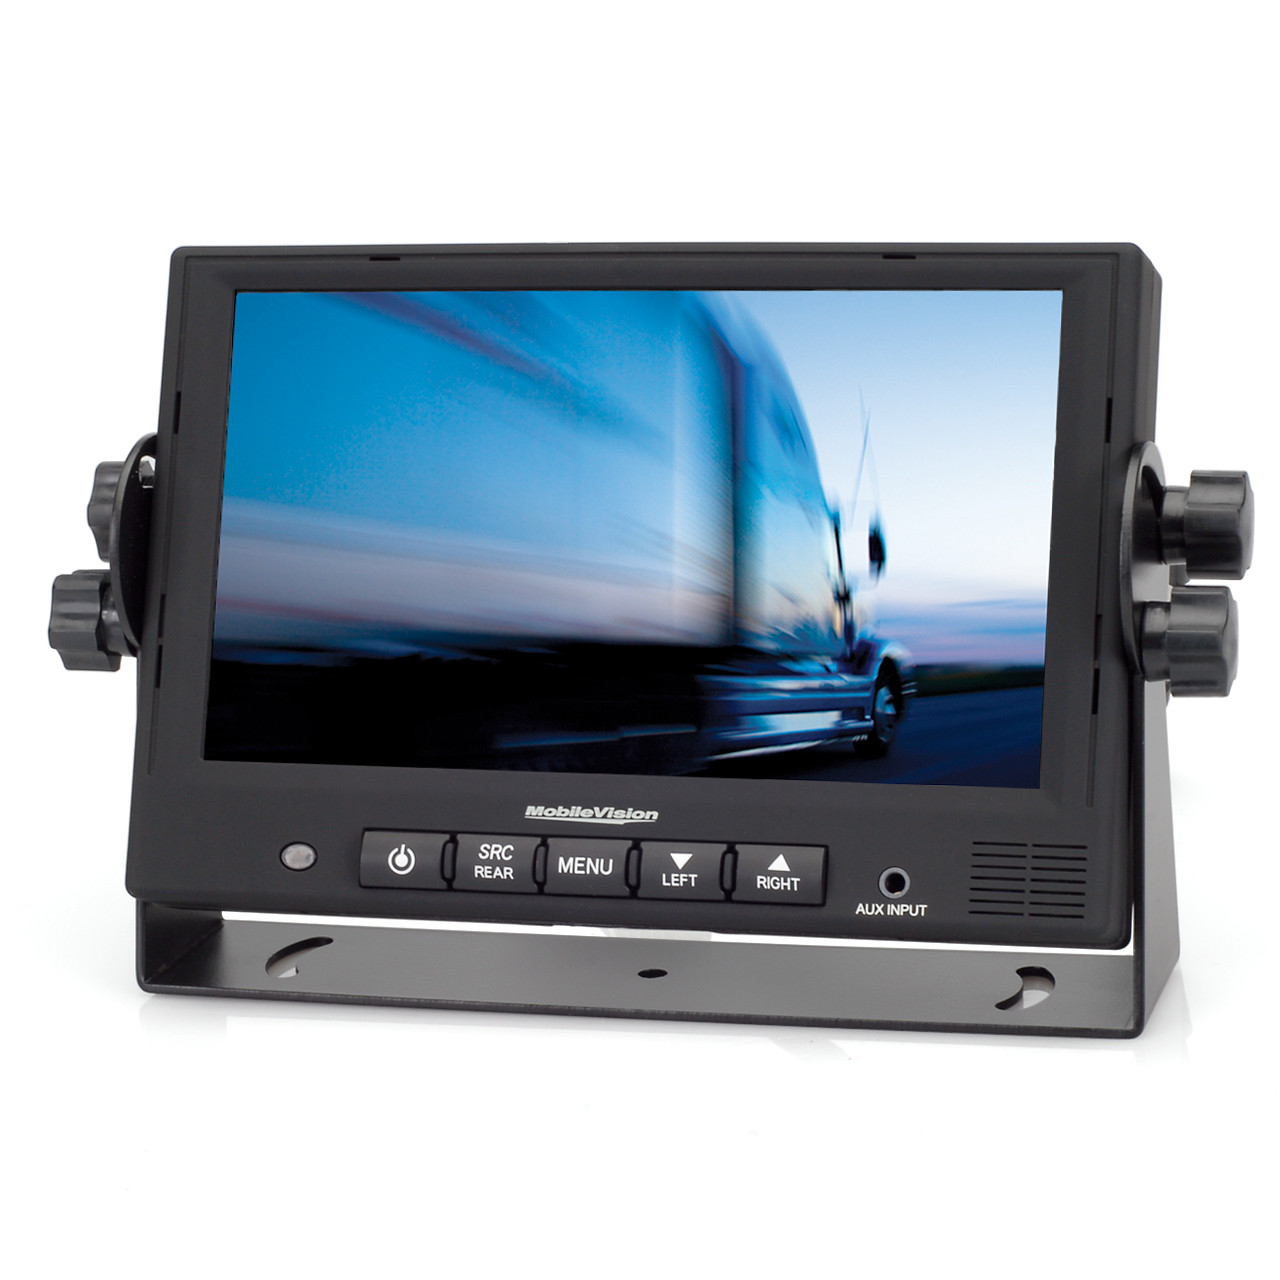 mobilevision m130c 7 color lcd safety camera monitor front view [ 1280 x 1280 Pixel ]